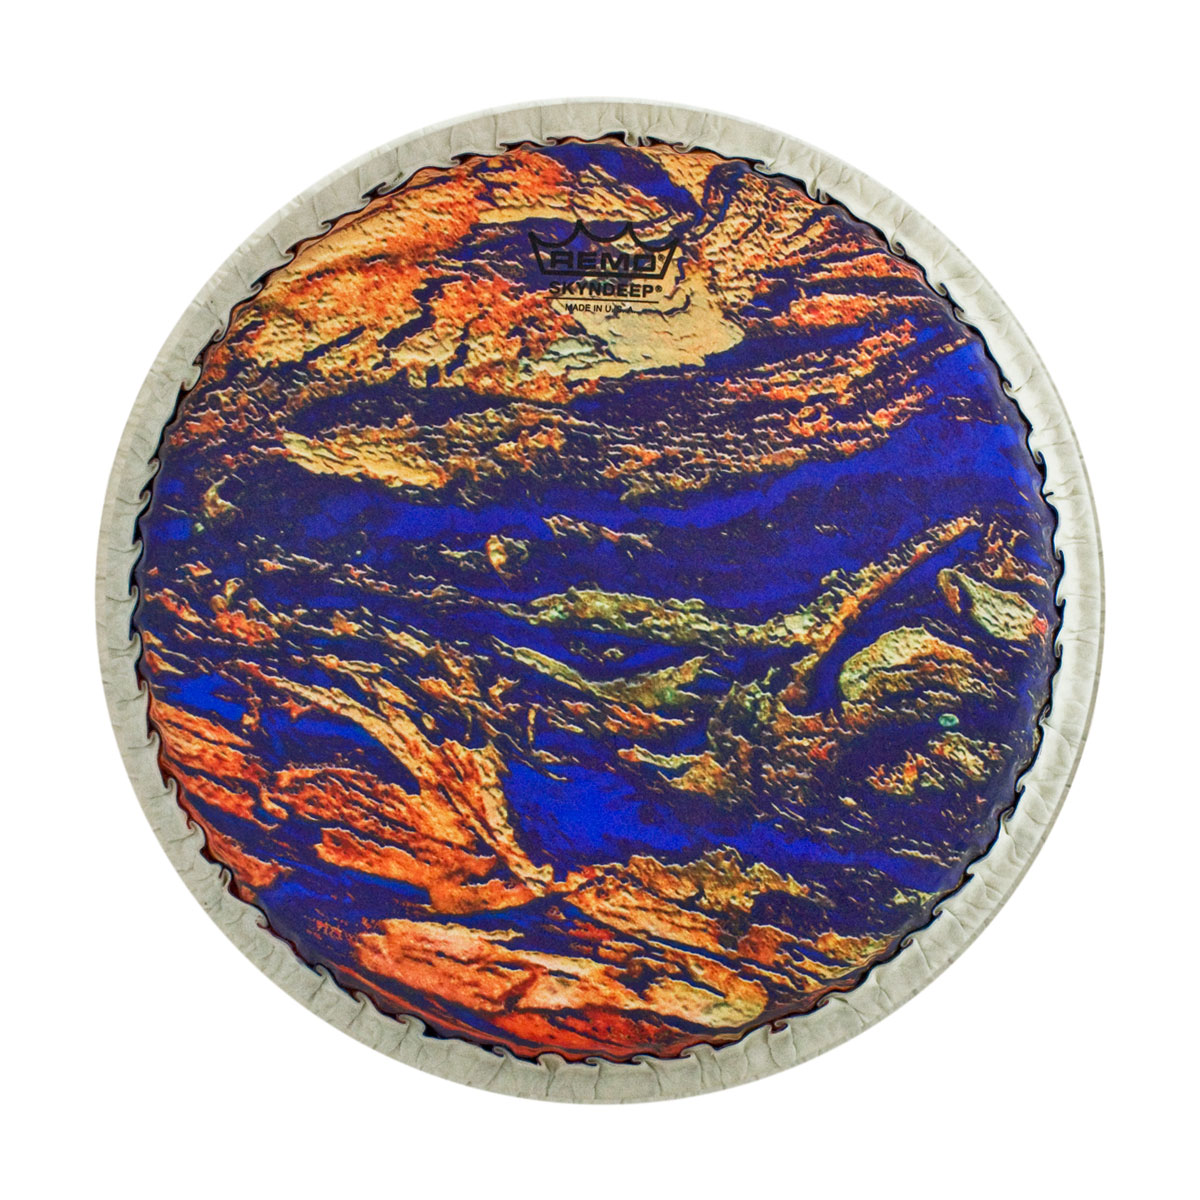 """Remo 11.75"""" Tucked Skyndeep Conga Drum Head with Molten Sea Graphic"""